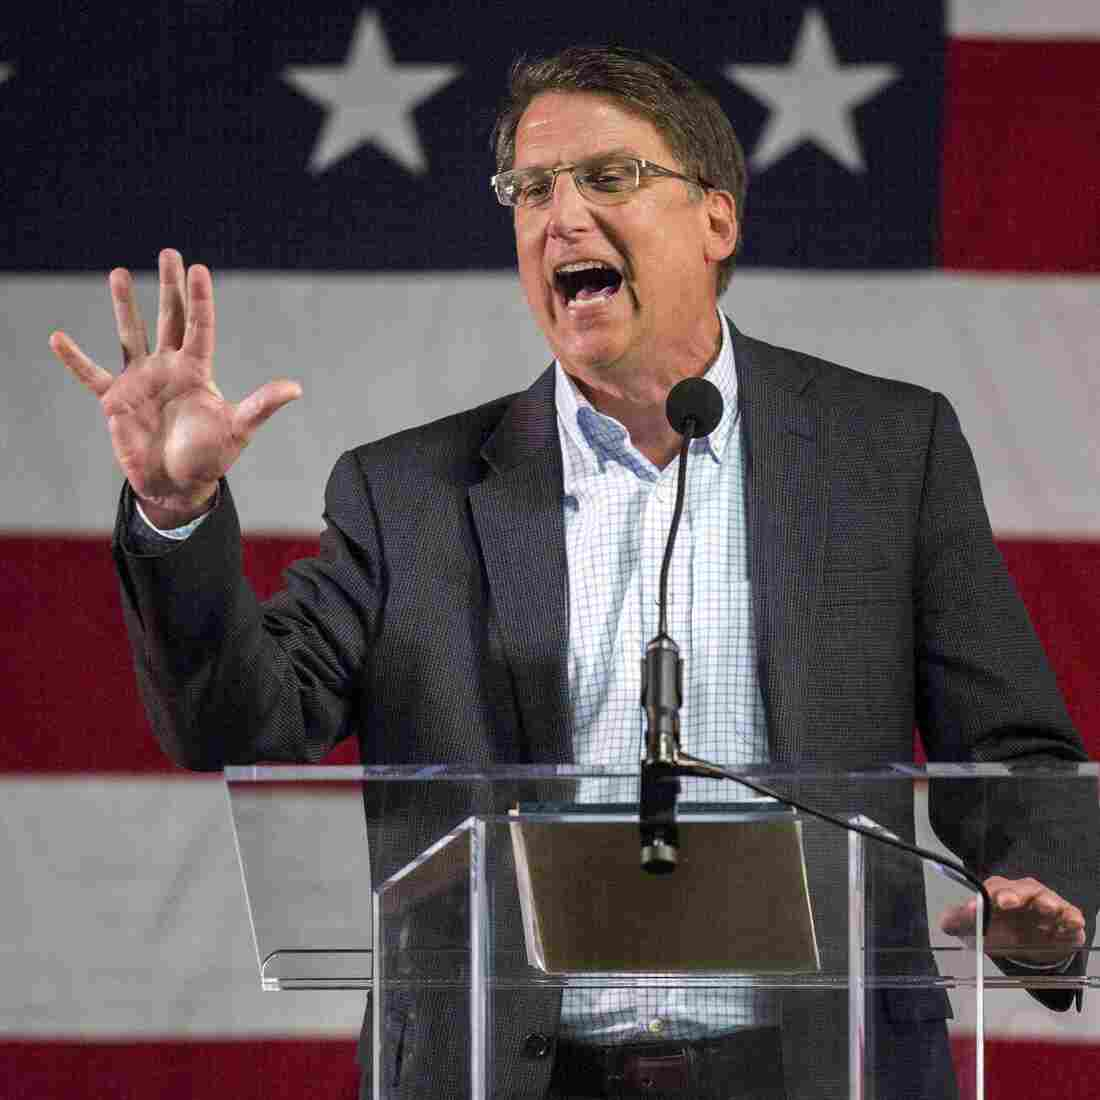 North Carolina Passes Law Blocking Measures To Protect LGBT People